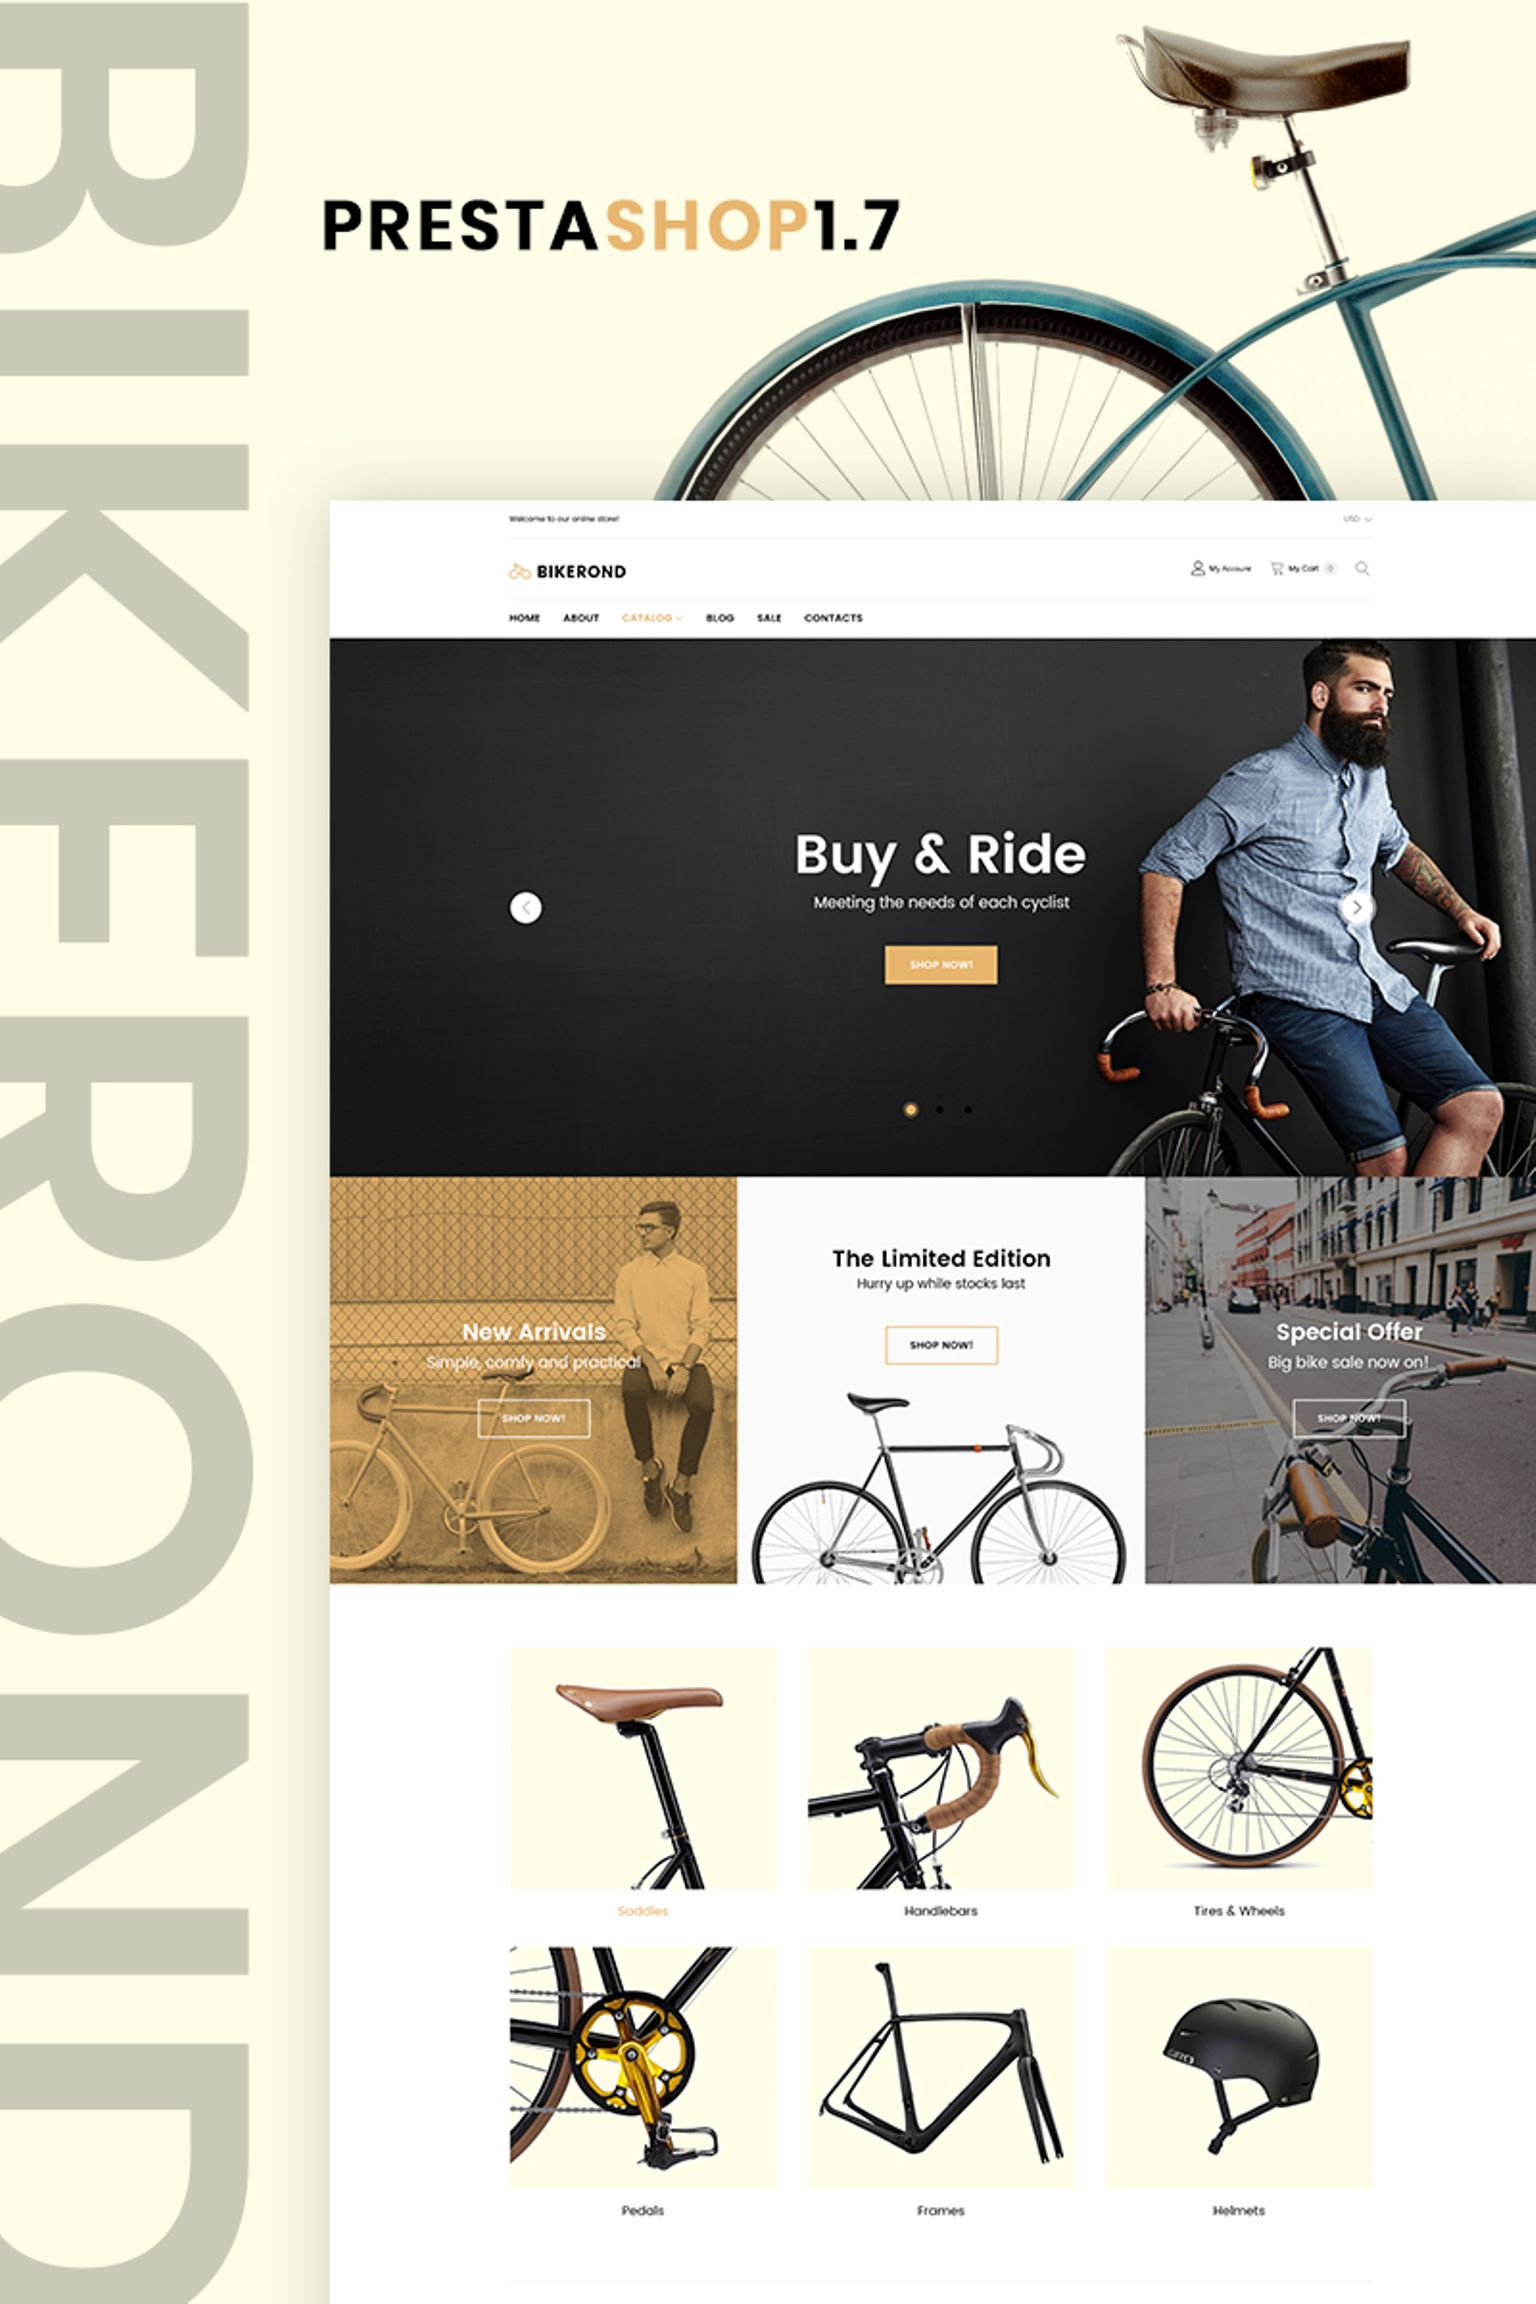 BikeRond - Bike Shop PrestaShop Theme - screenshot